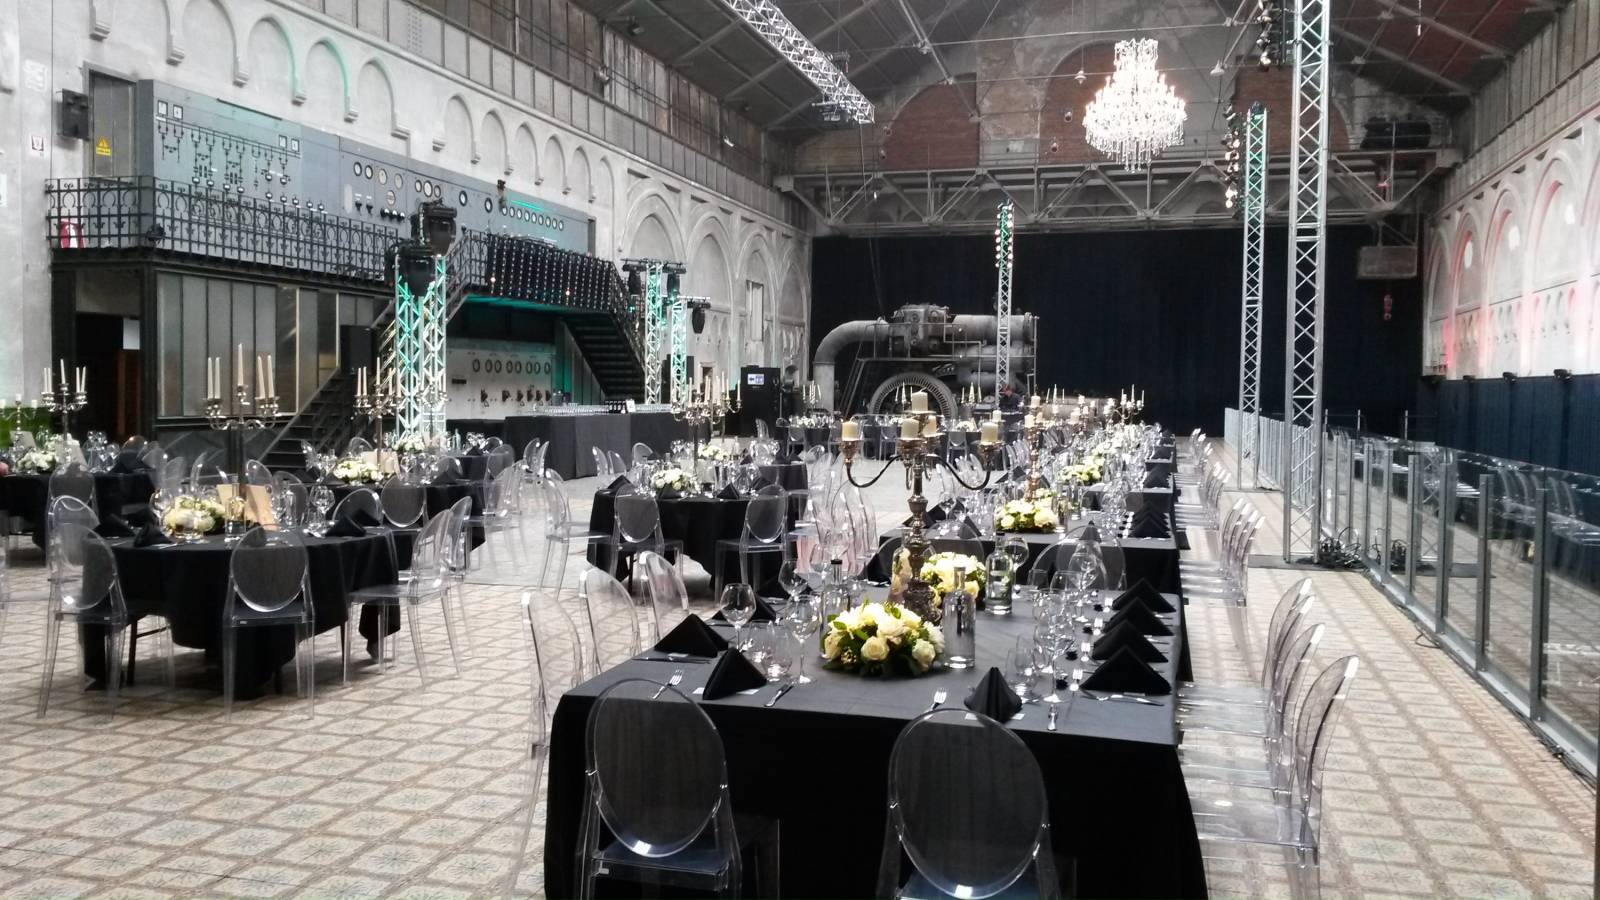 Cardinal Catering - Catering Event - Traiteur - Cateraar - House of Events - 8